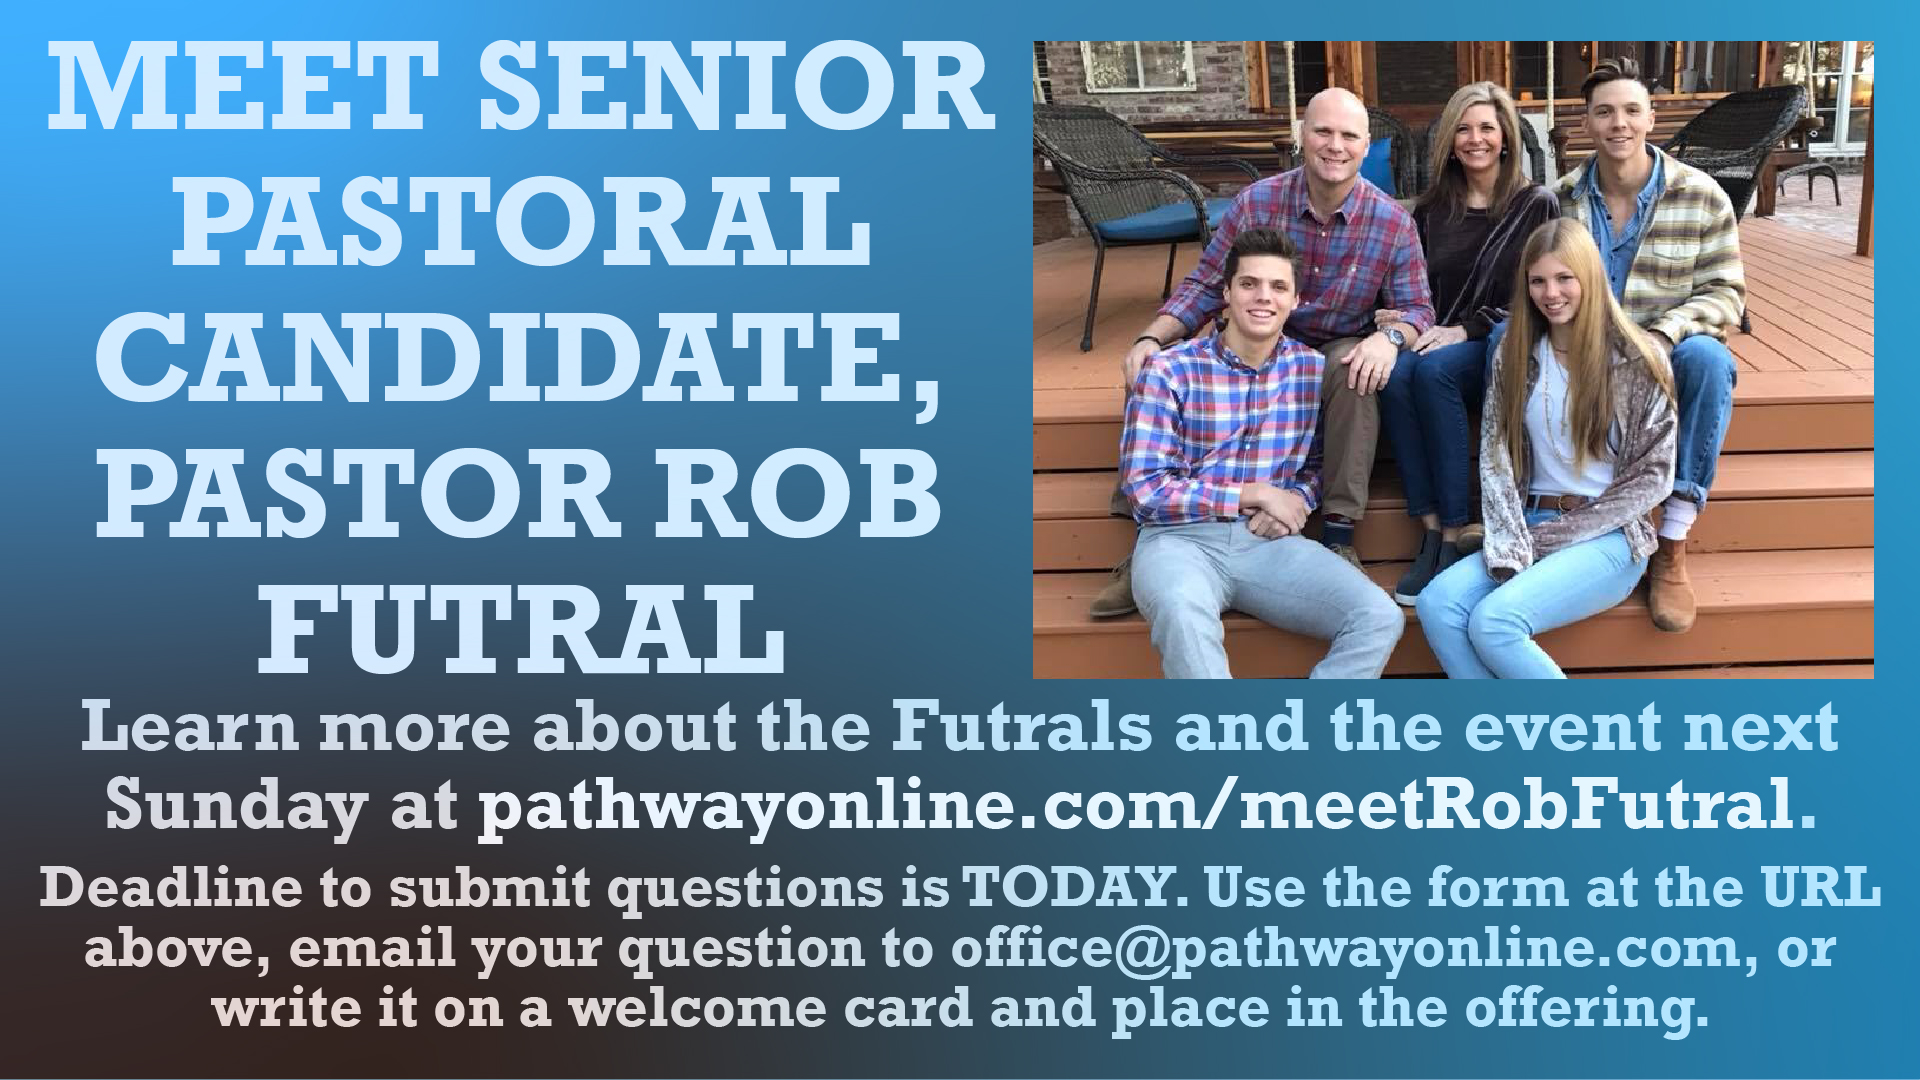 Learn more about our Senior Pastoral candidate Pastor Rob Futral and the event on March 17